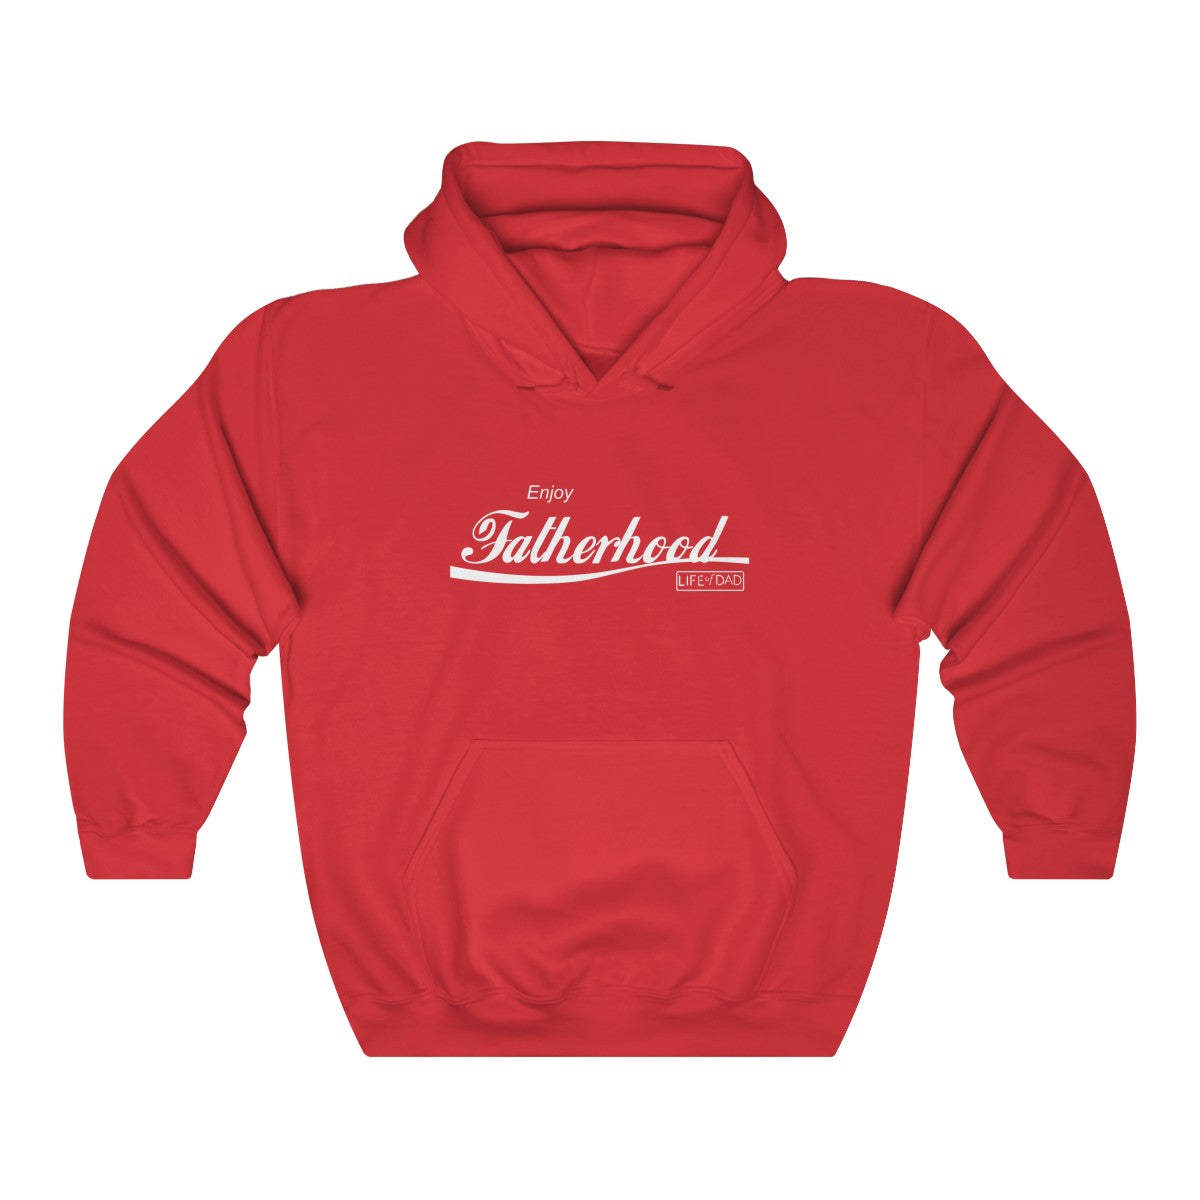 Enjoy Fatherhood - Life of Dad Sweatshirt